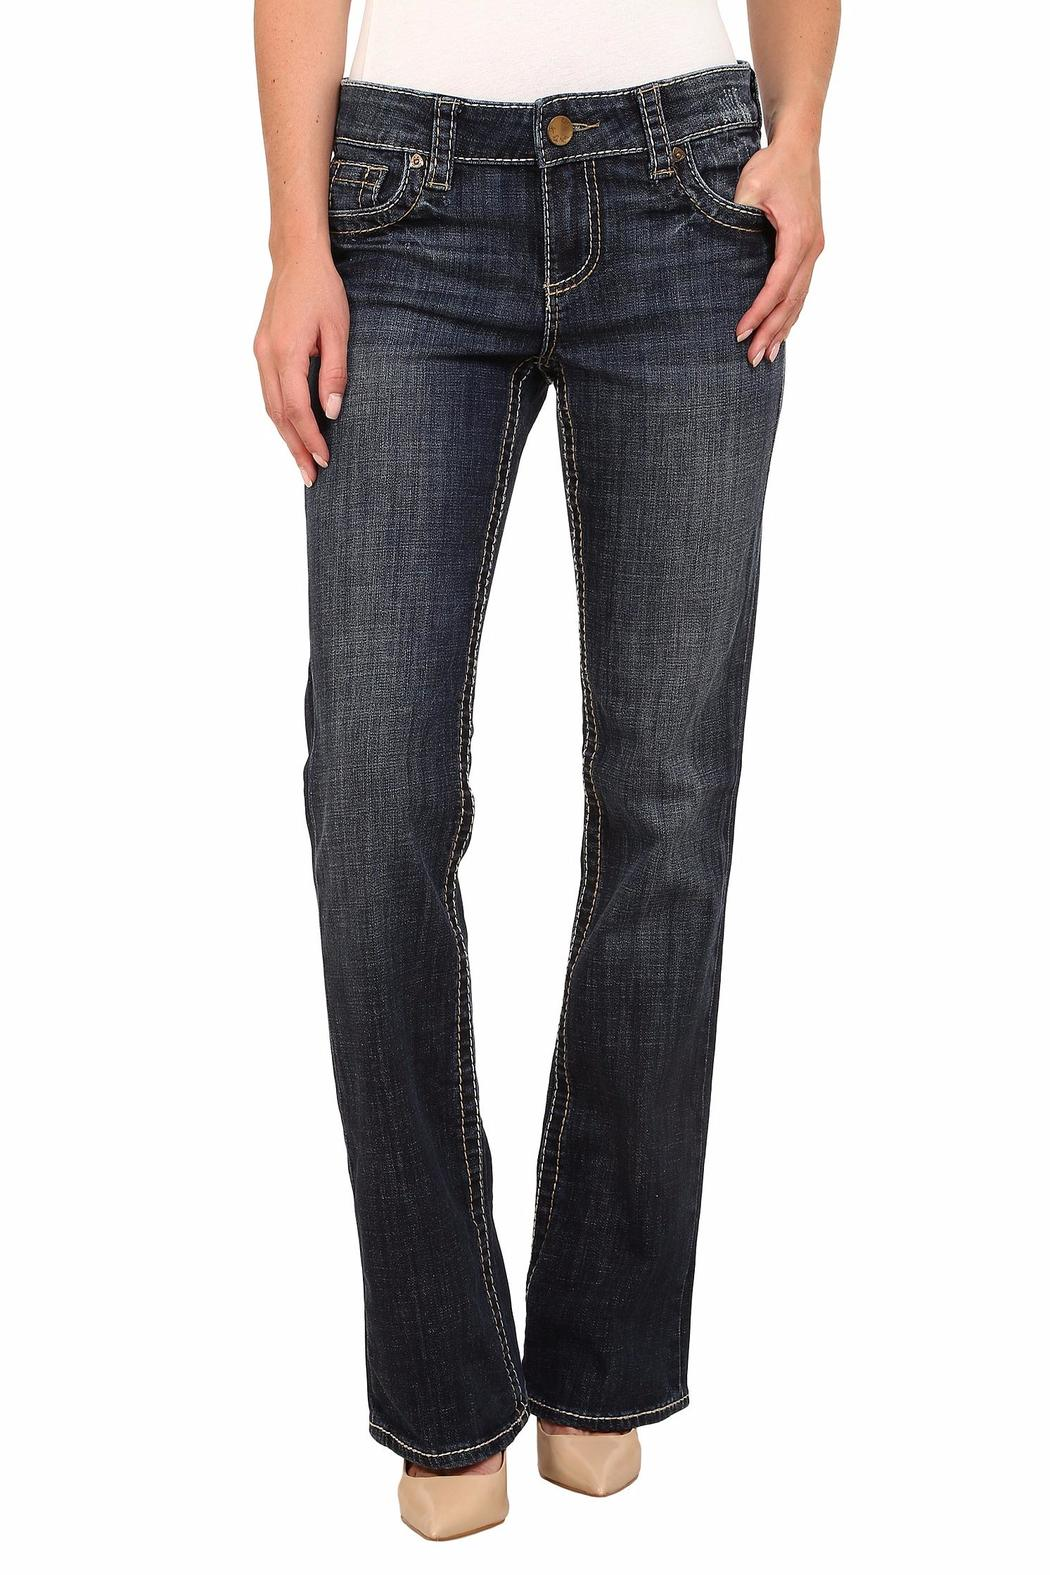 Kut from the Kloth Natalie Bootleg Jeans - Main Image